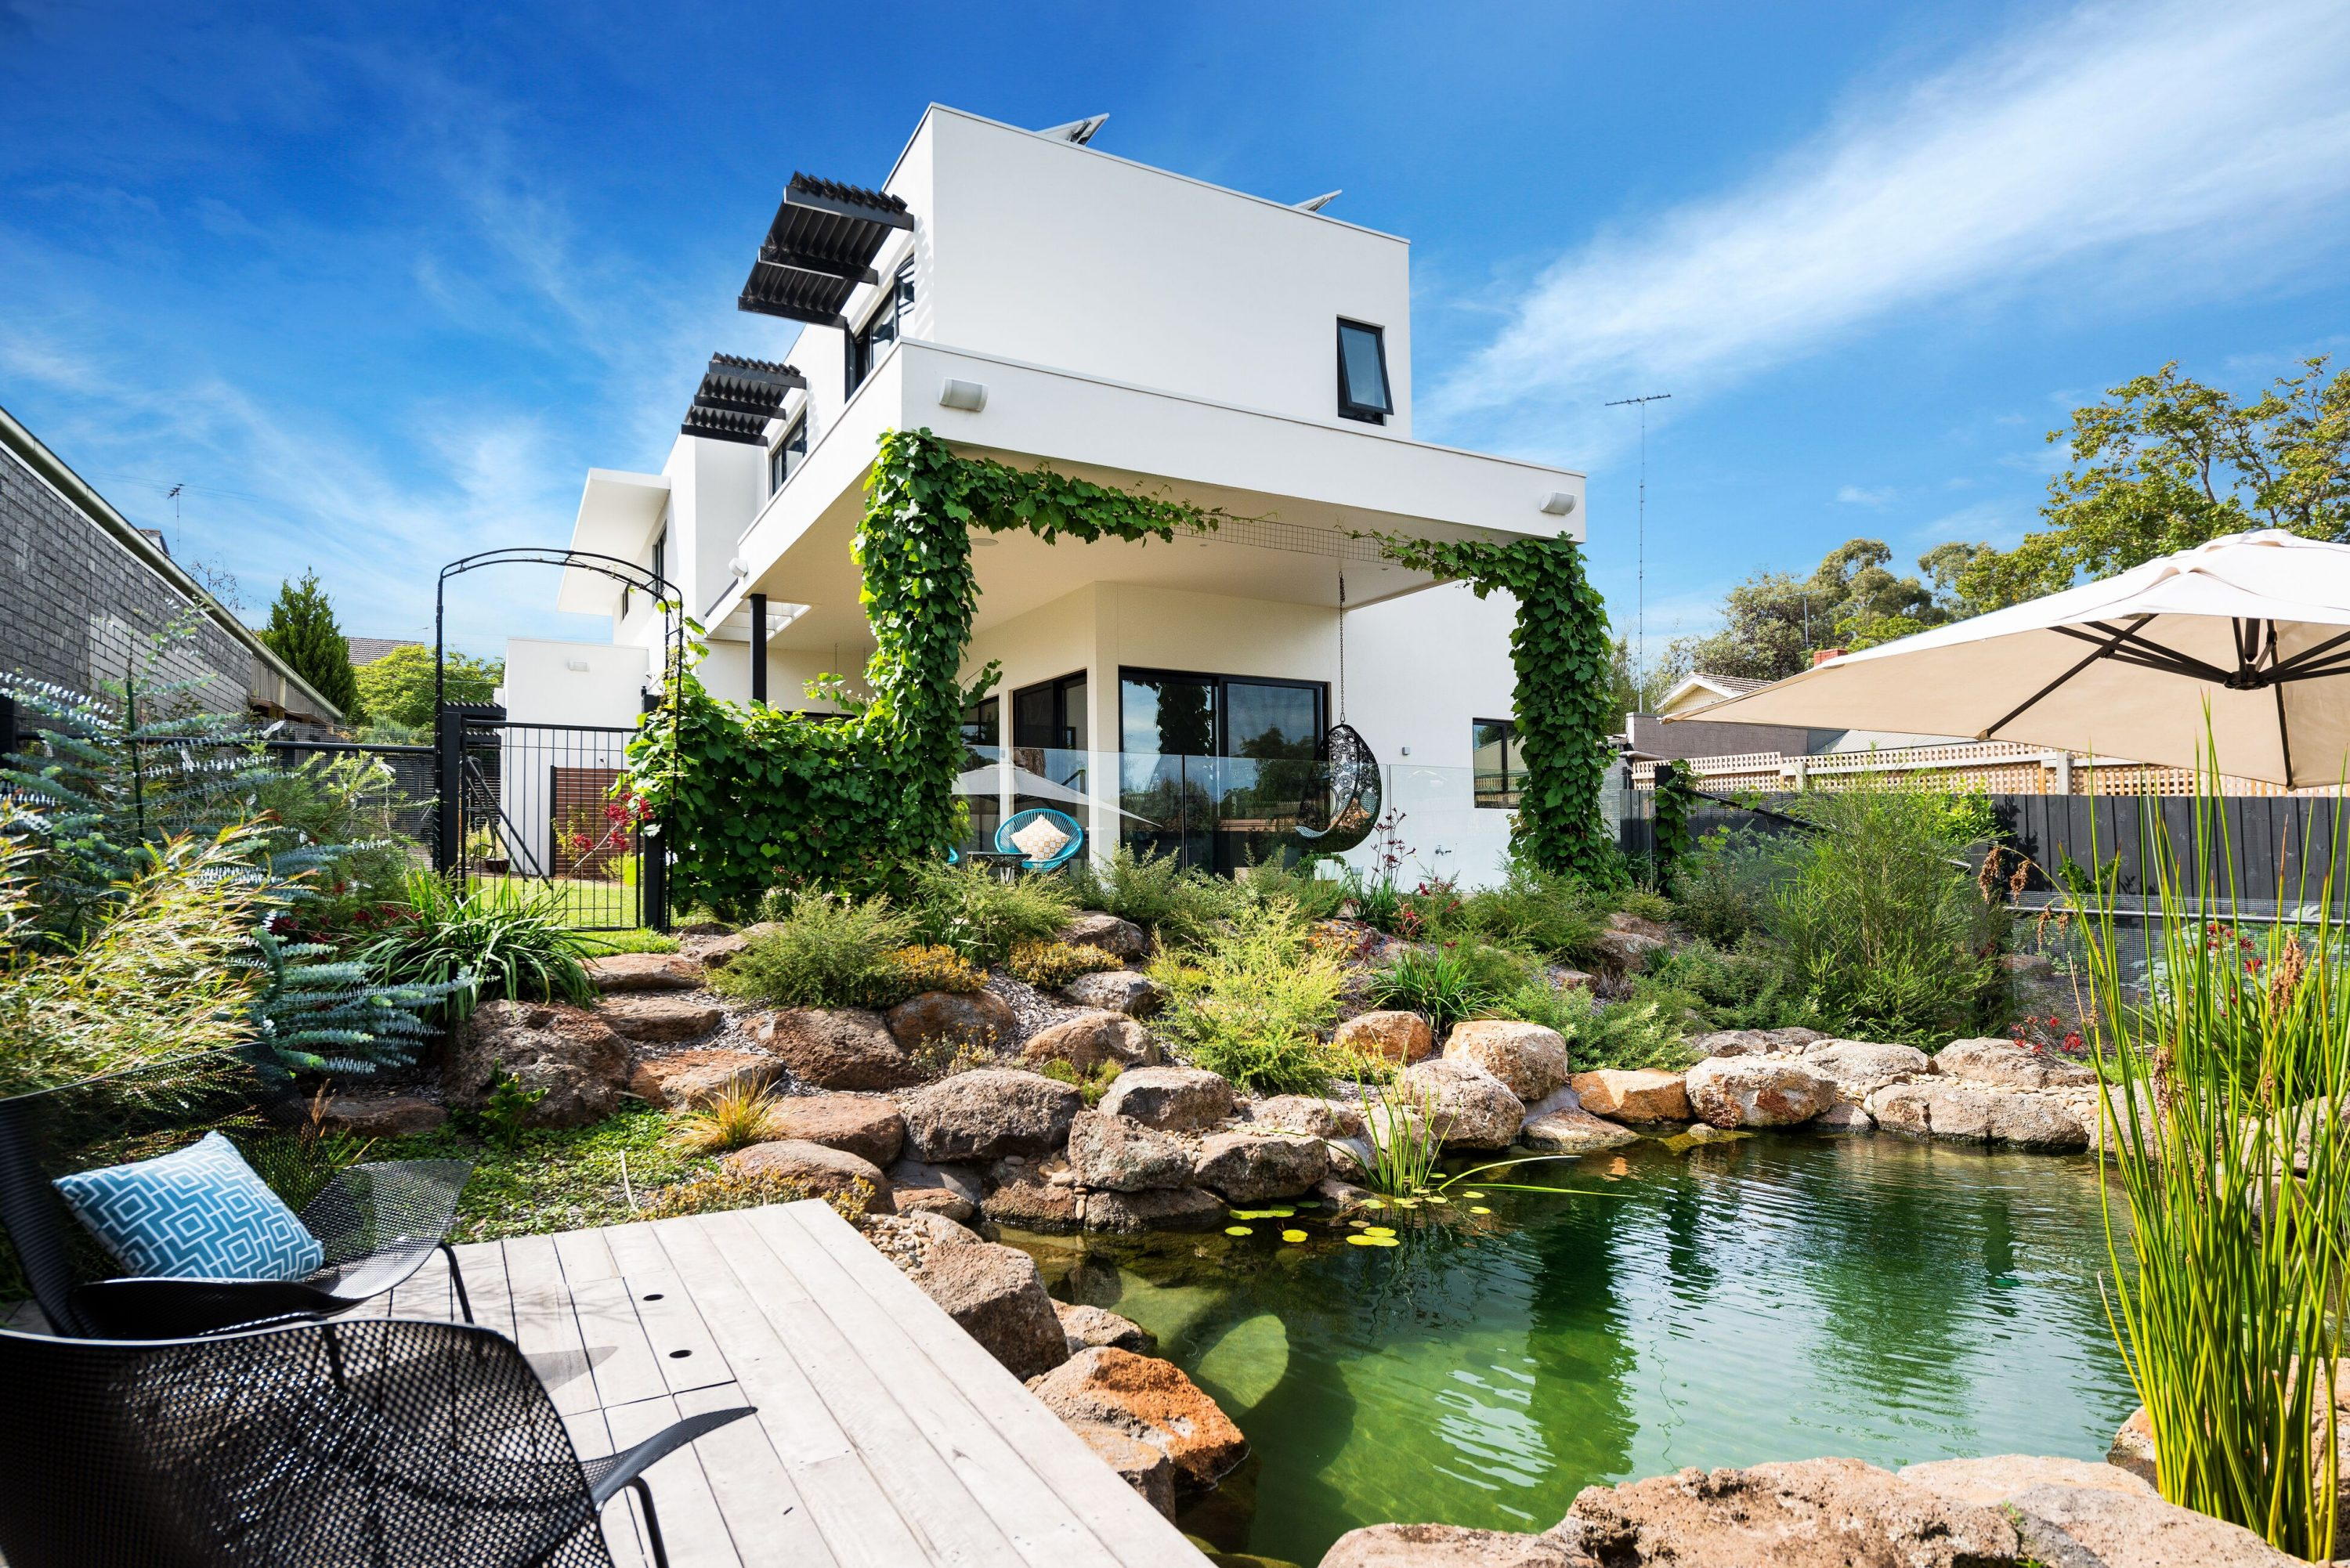 House Tour This Sustainable Home Has Its Own Billabong